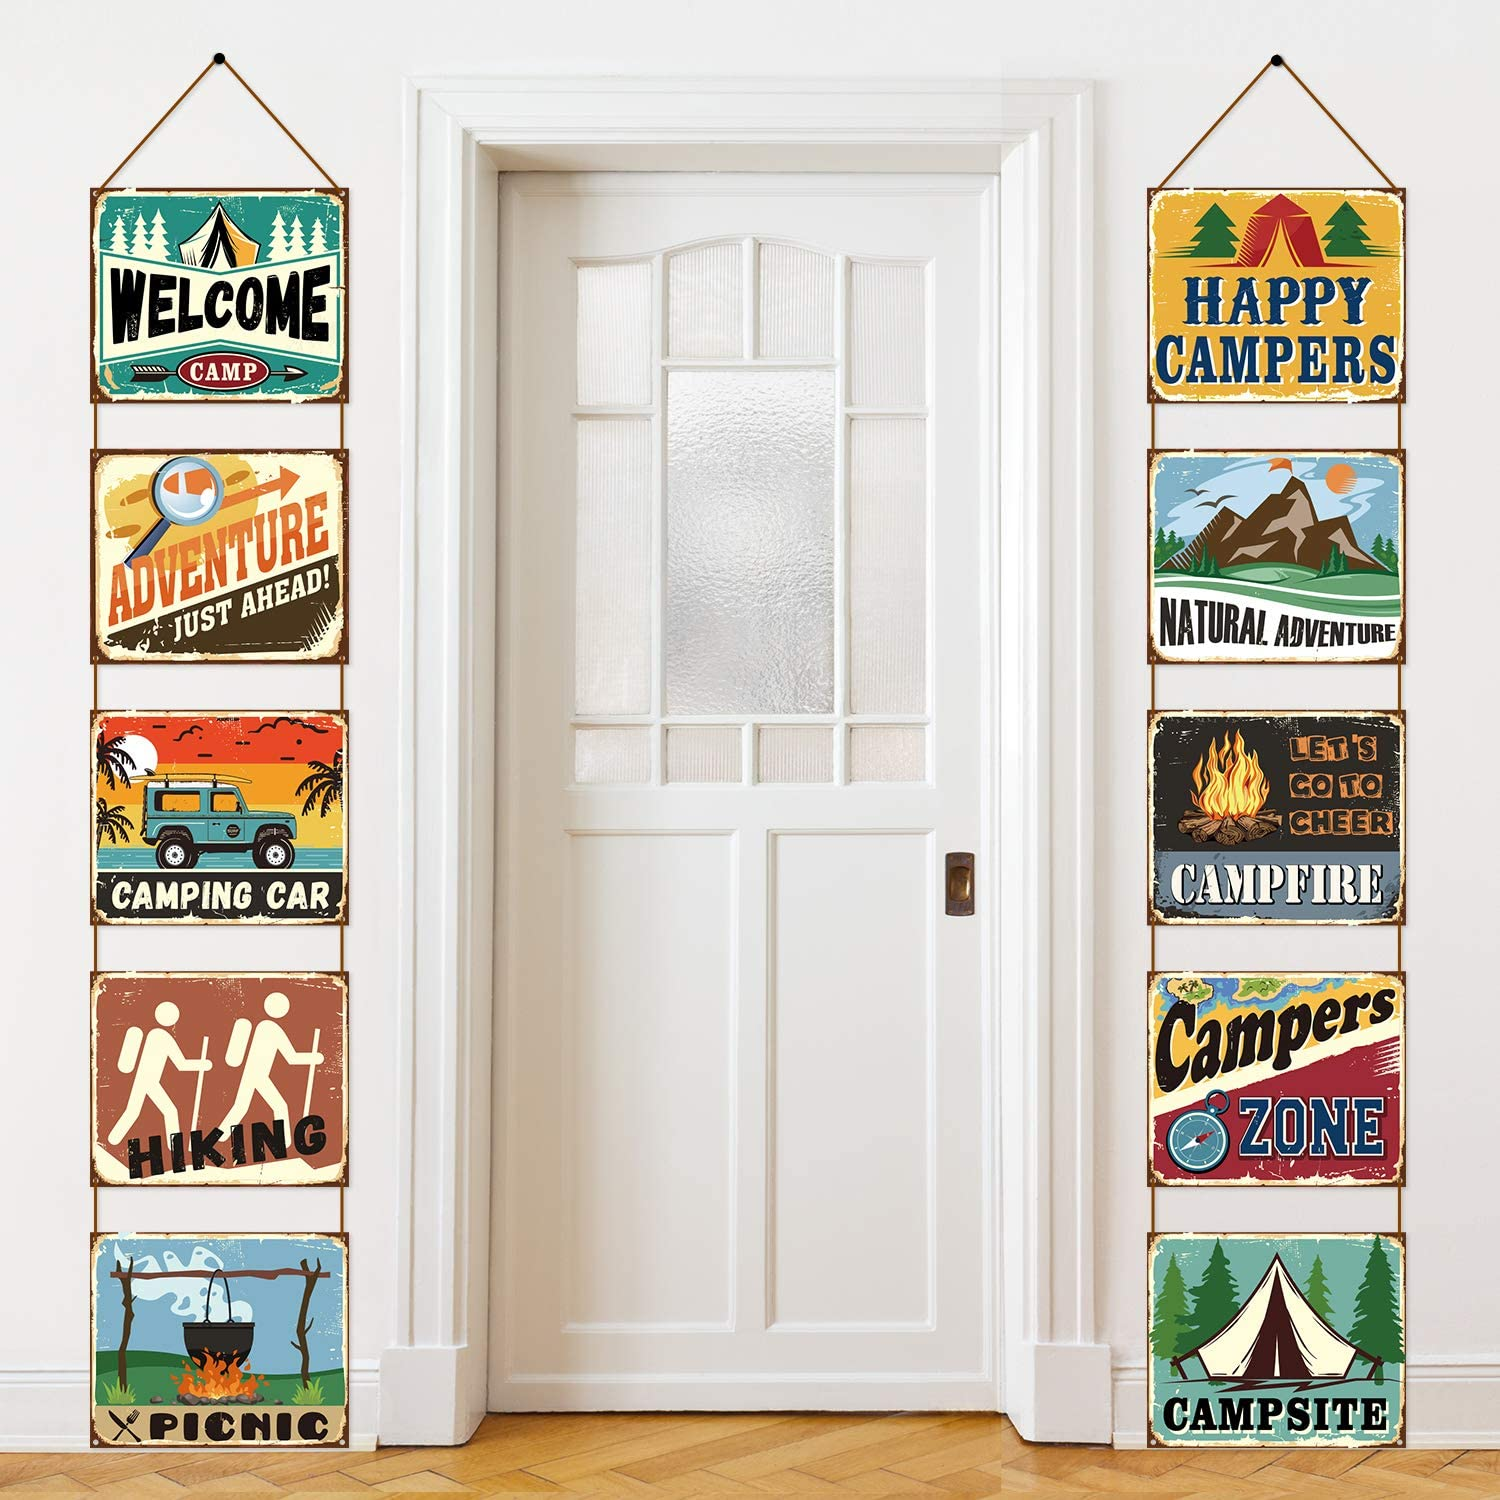 Camping Party Decorations Camping Banner Laminated Camping Signs Camp Themed Decorations Supply Birthday Party Baby Shower Decor Paper Cutouts with 2 Ropes and Glue Point Dots